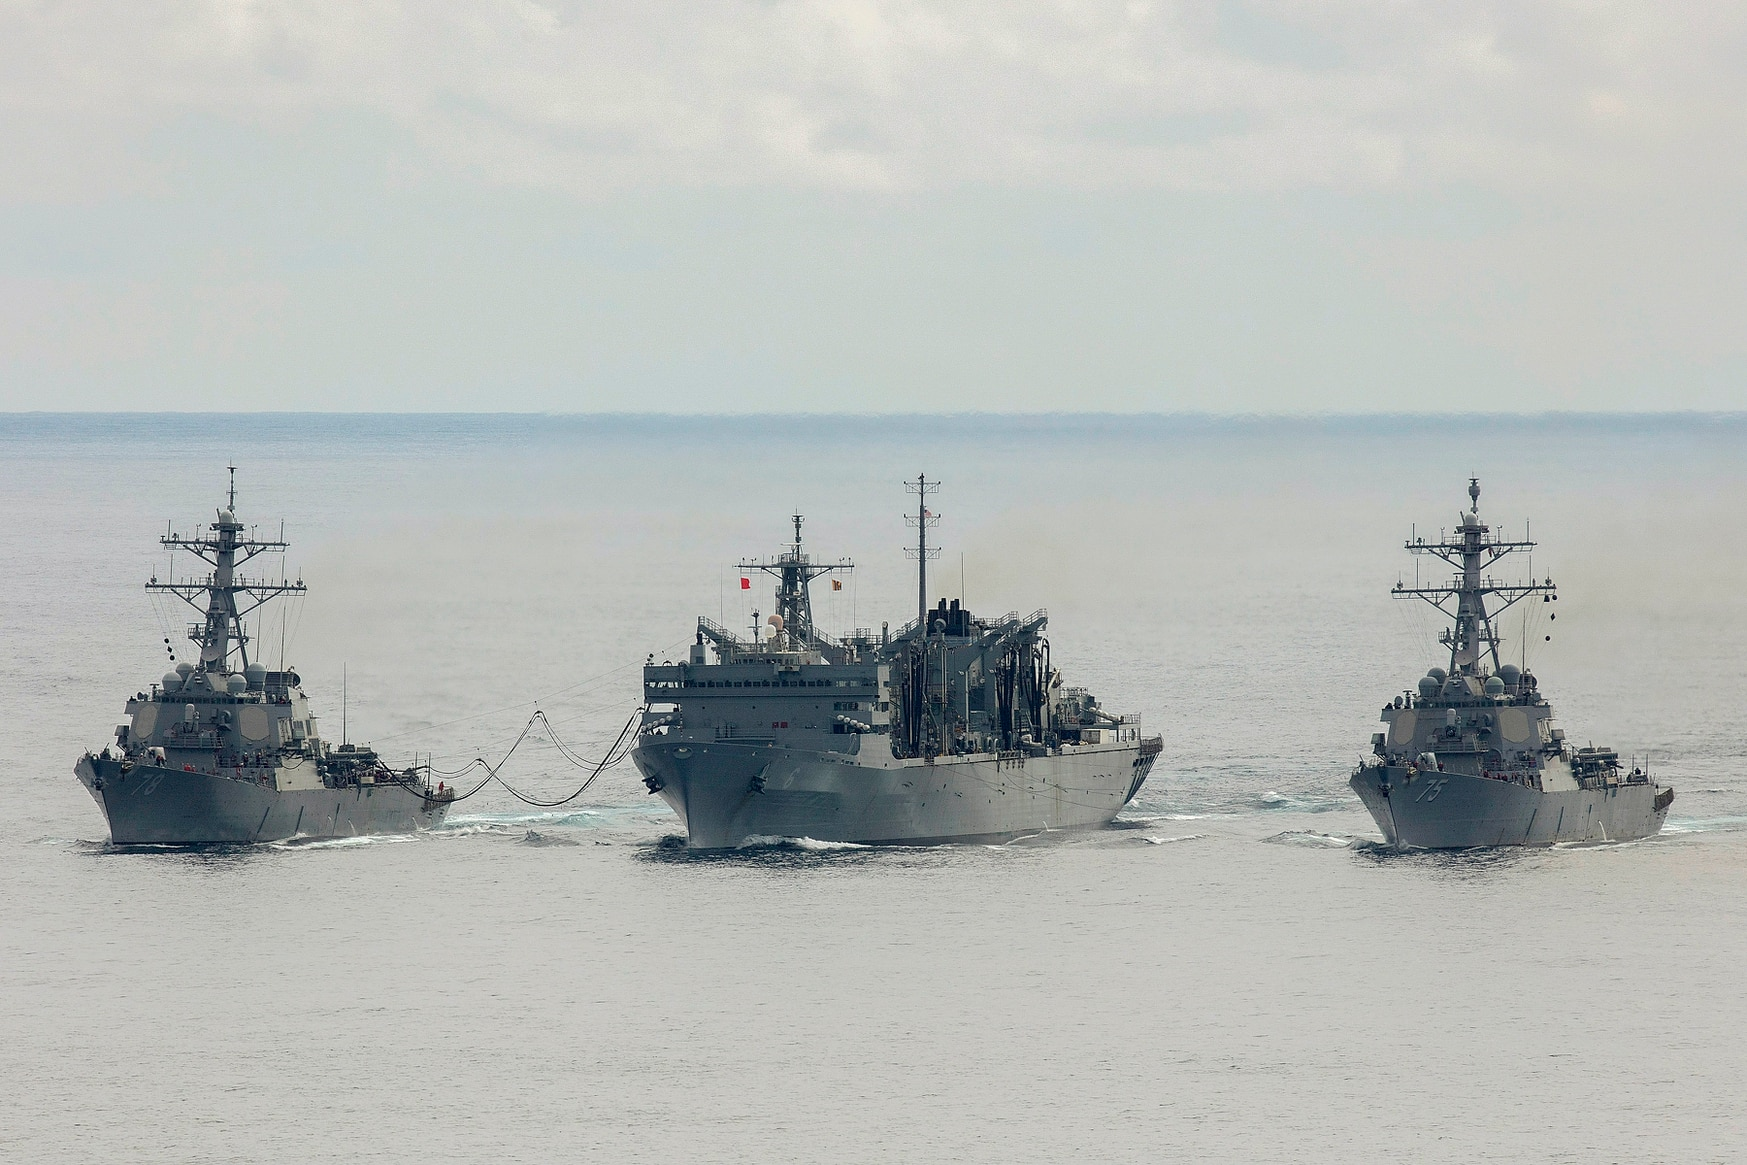 The U.S. Navy destroyers Porter and Donald Cook replenish from the fast combat support ship Supply while operating above the Arctic Circle. (LPhot Dan Rosenbaum/British Royal Navy)